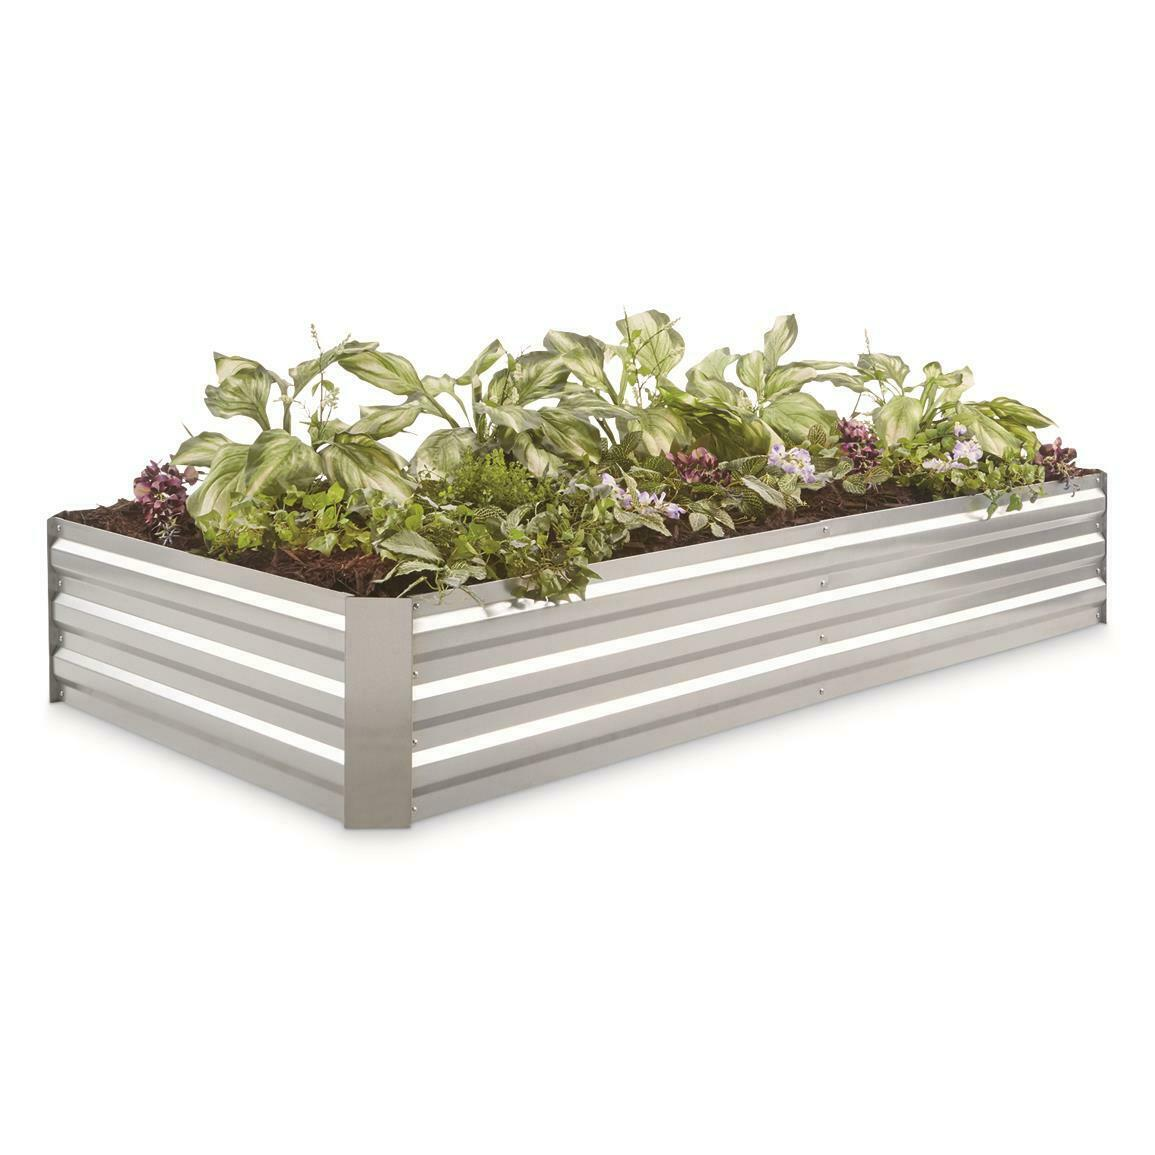 Steel Planter Box Large Galvanized Easy Assembly Modular Design Durable Fit Set For Sale Online